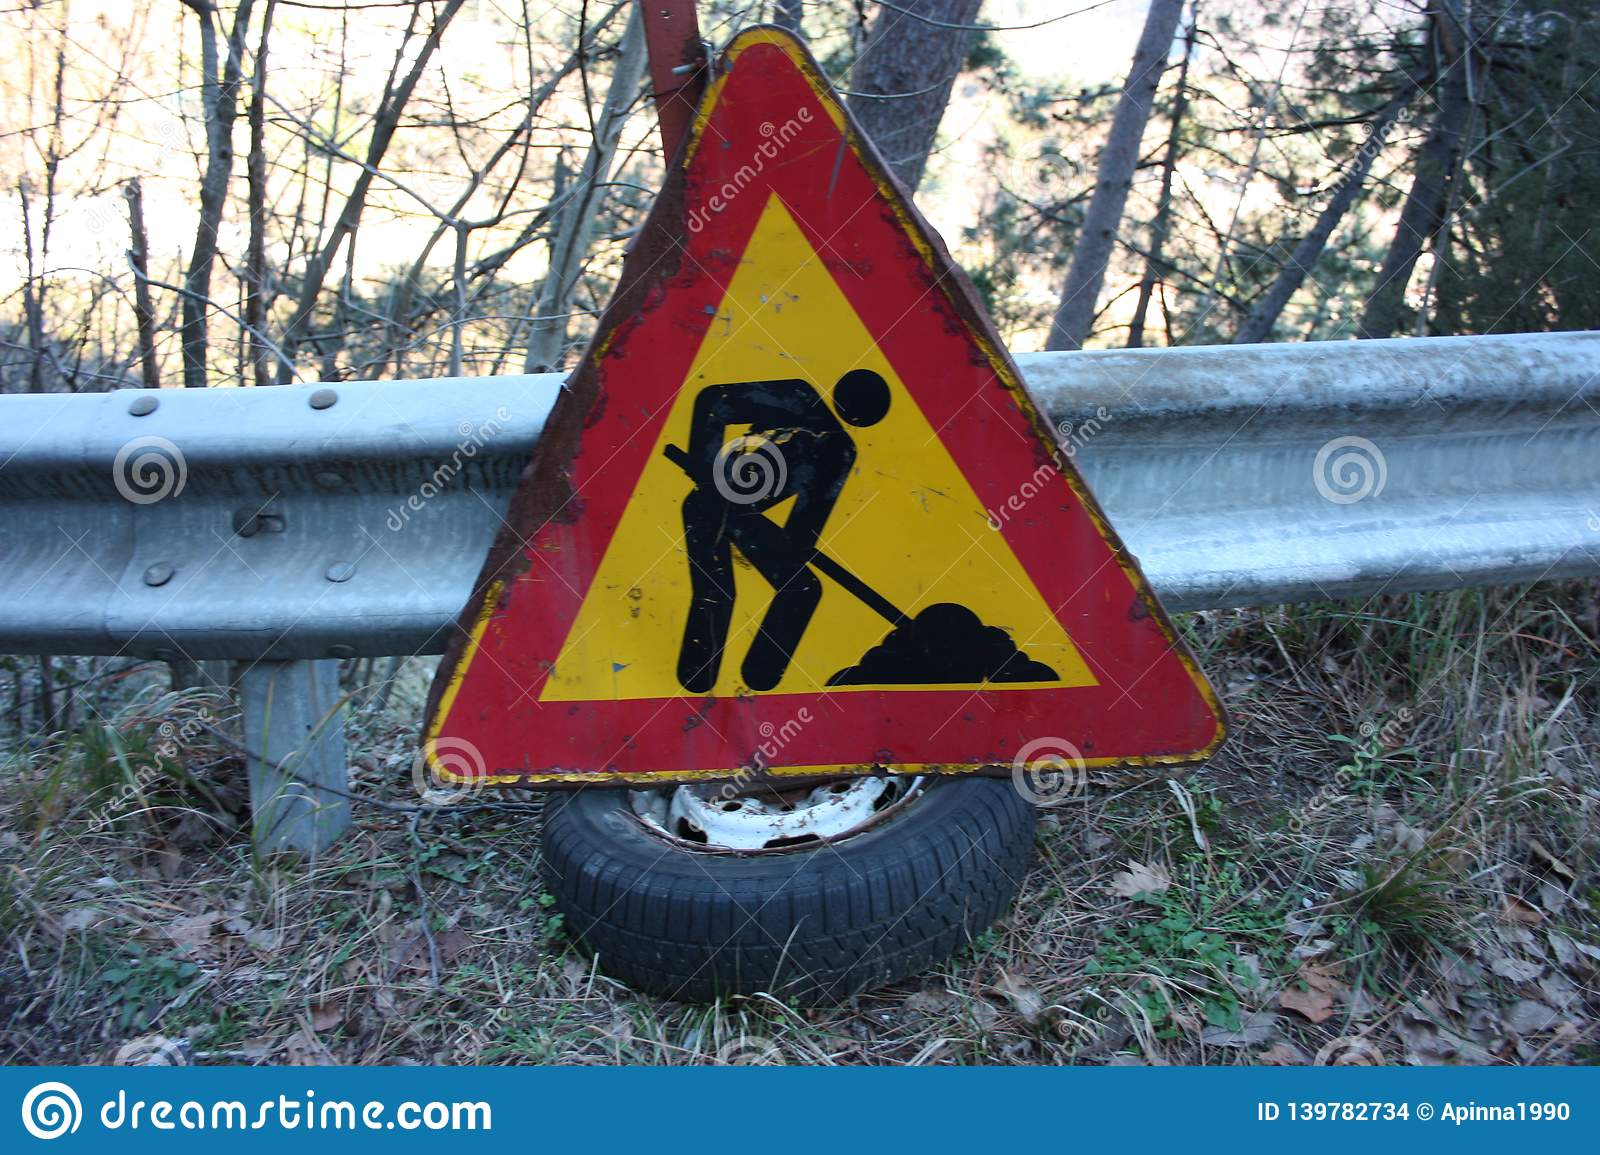 Editorial photo of a road construction site. warning signs of work in progress. cartels written in Italian. public message